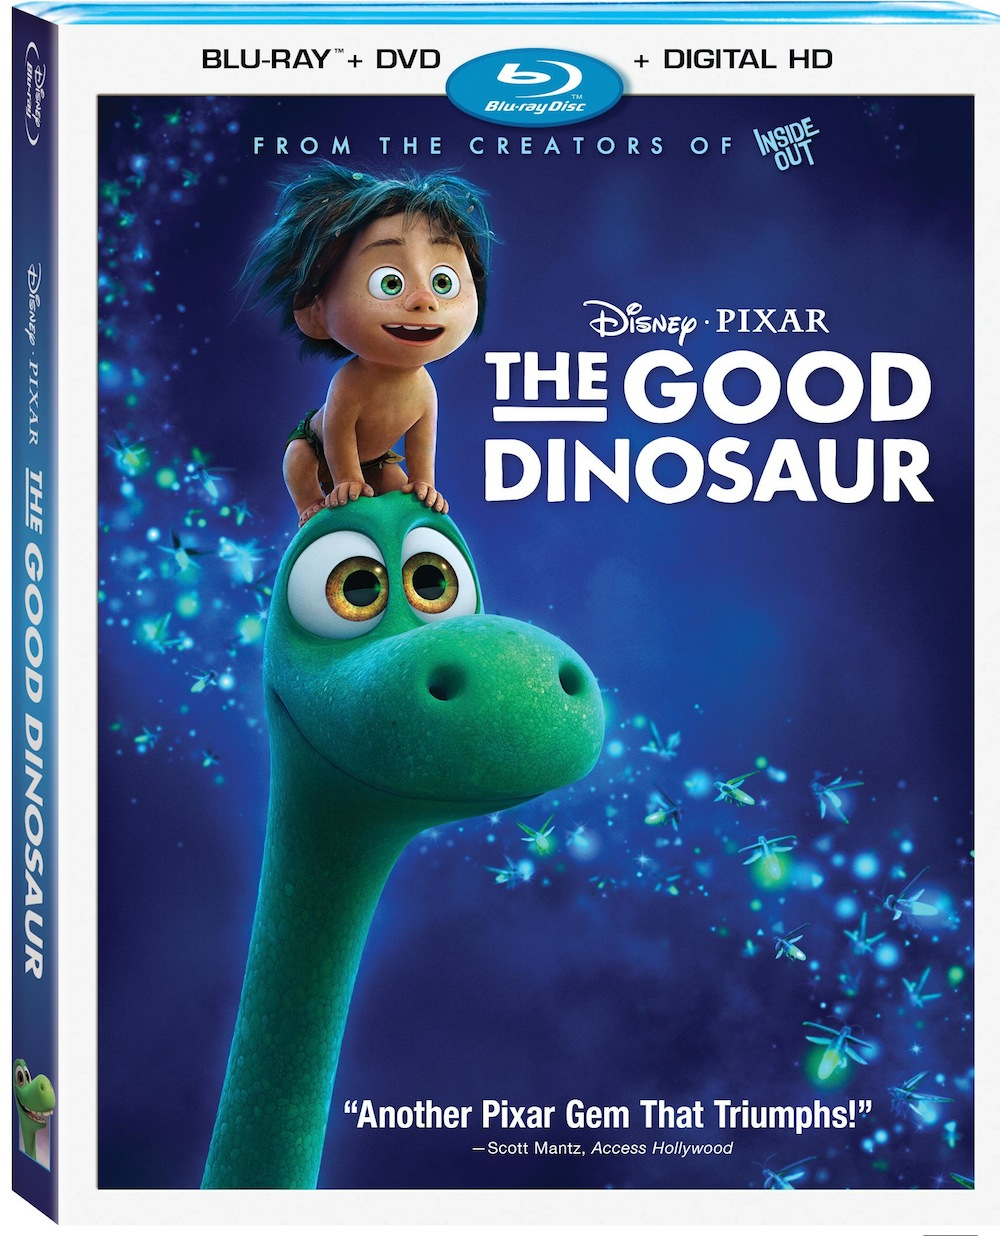 Disney-Pixar The Good Dinosaur on Home Video (Jason's First Impressions)